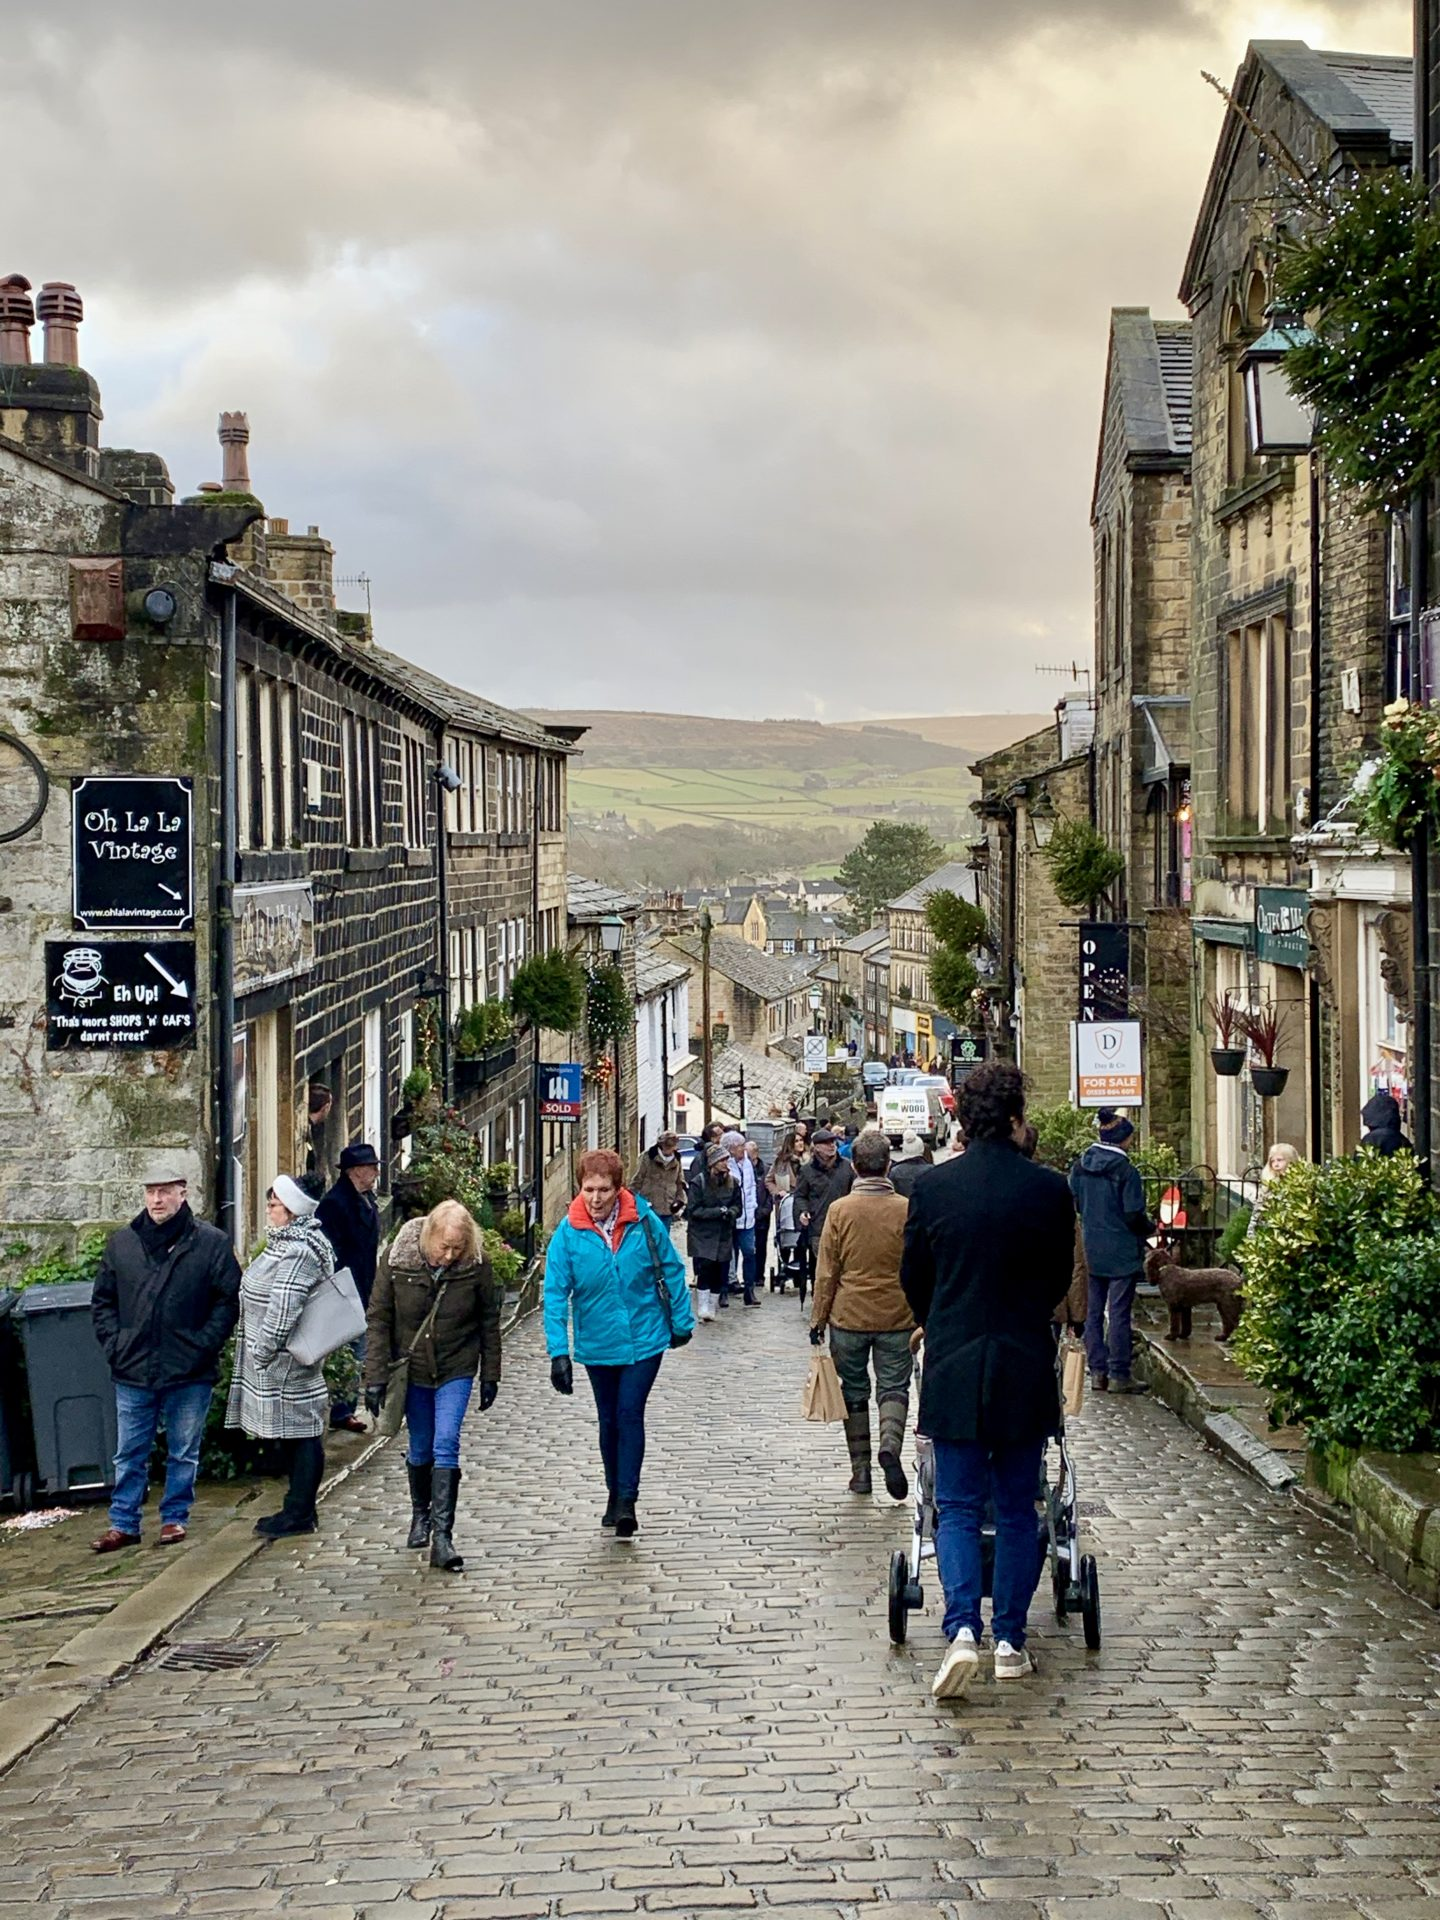 the main shopping street in Haworth on wet and grey day - the perfect day trip from York